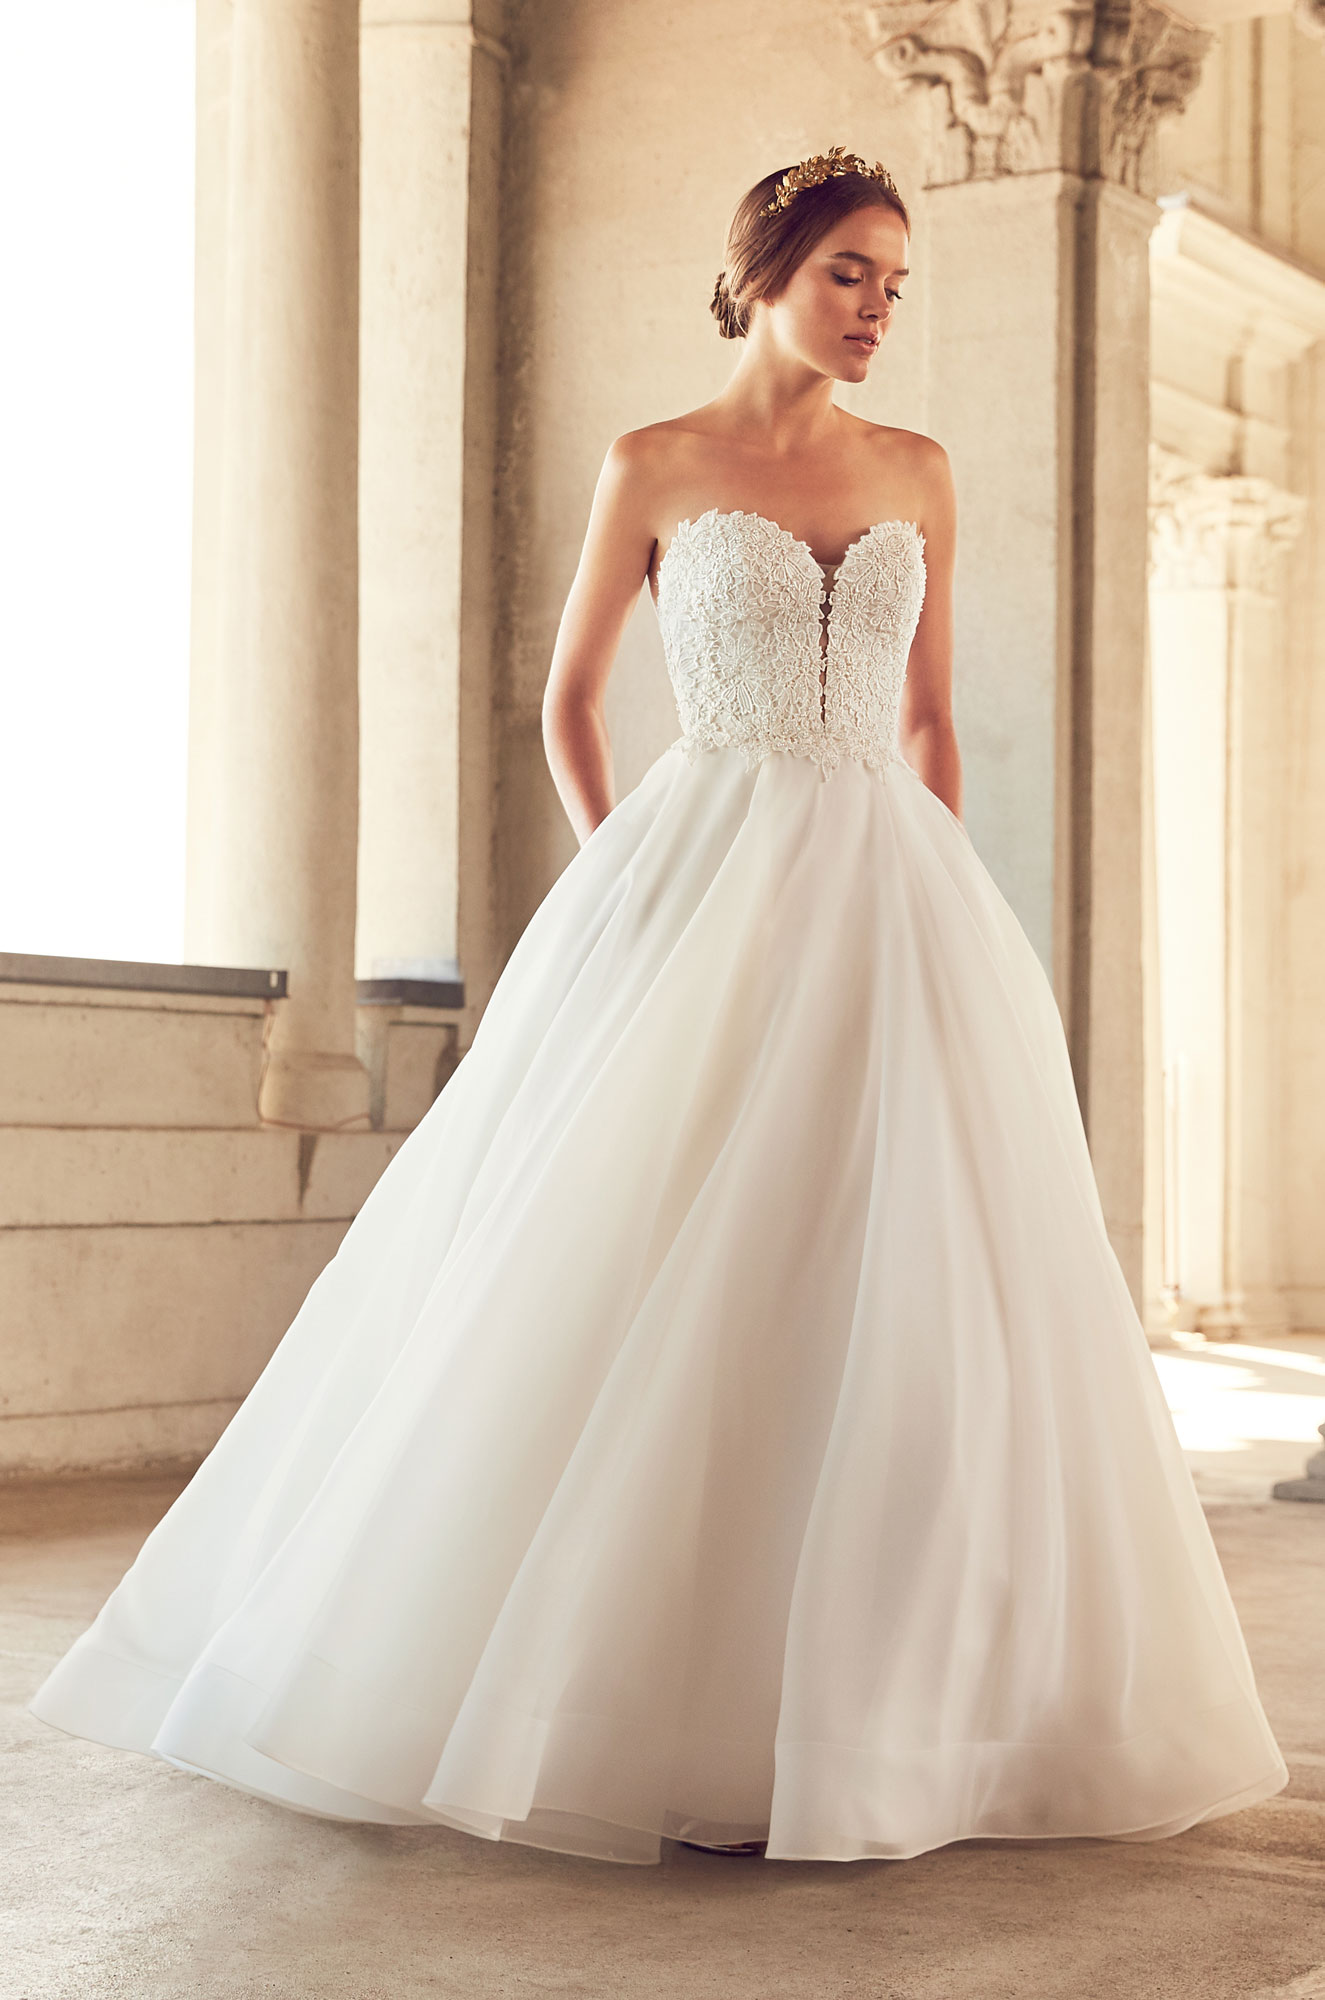 Mira Couture Paloma Blanca 4793 Wedding Dress Bridal Gown Chicago Boutique Front